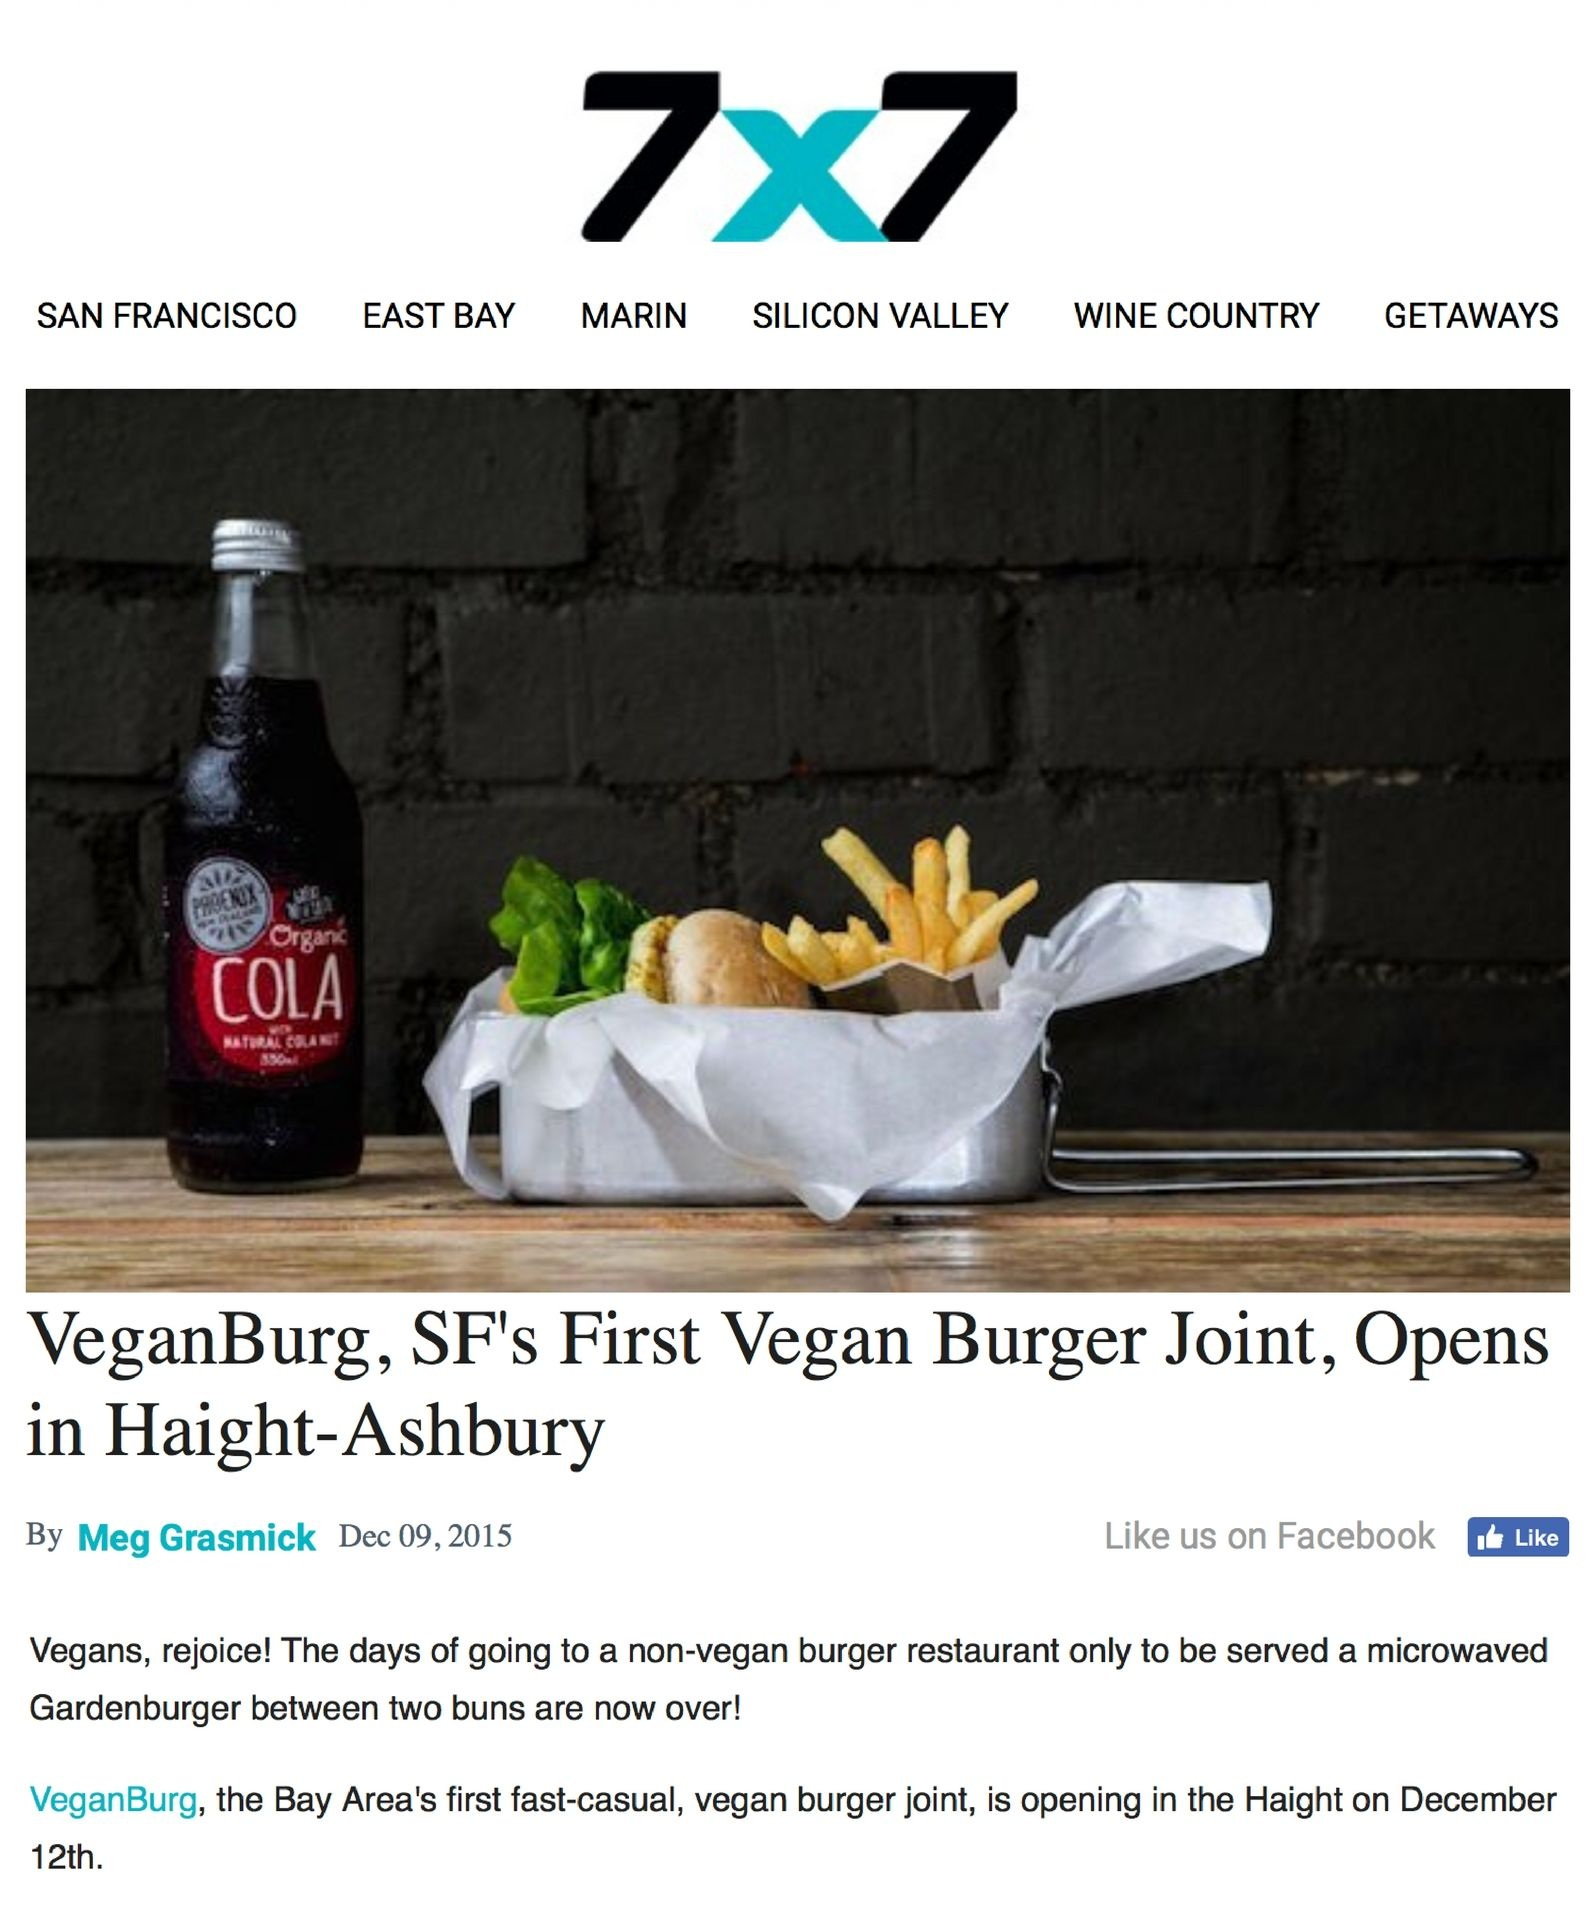 7x7_+VeganBurg%2C+SF%27s+First+Vegan+Burger+Joint%2C+Opens+in+Haight-Ashbury.jpg